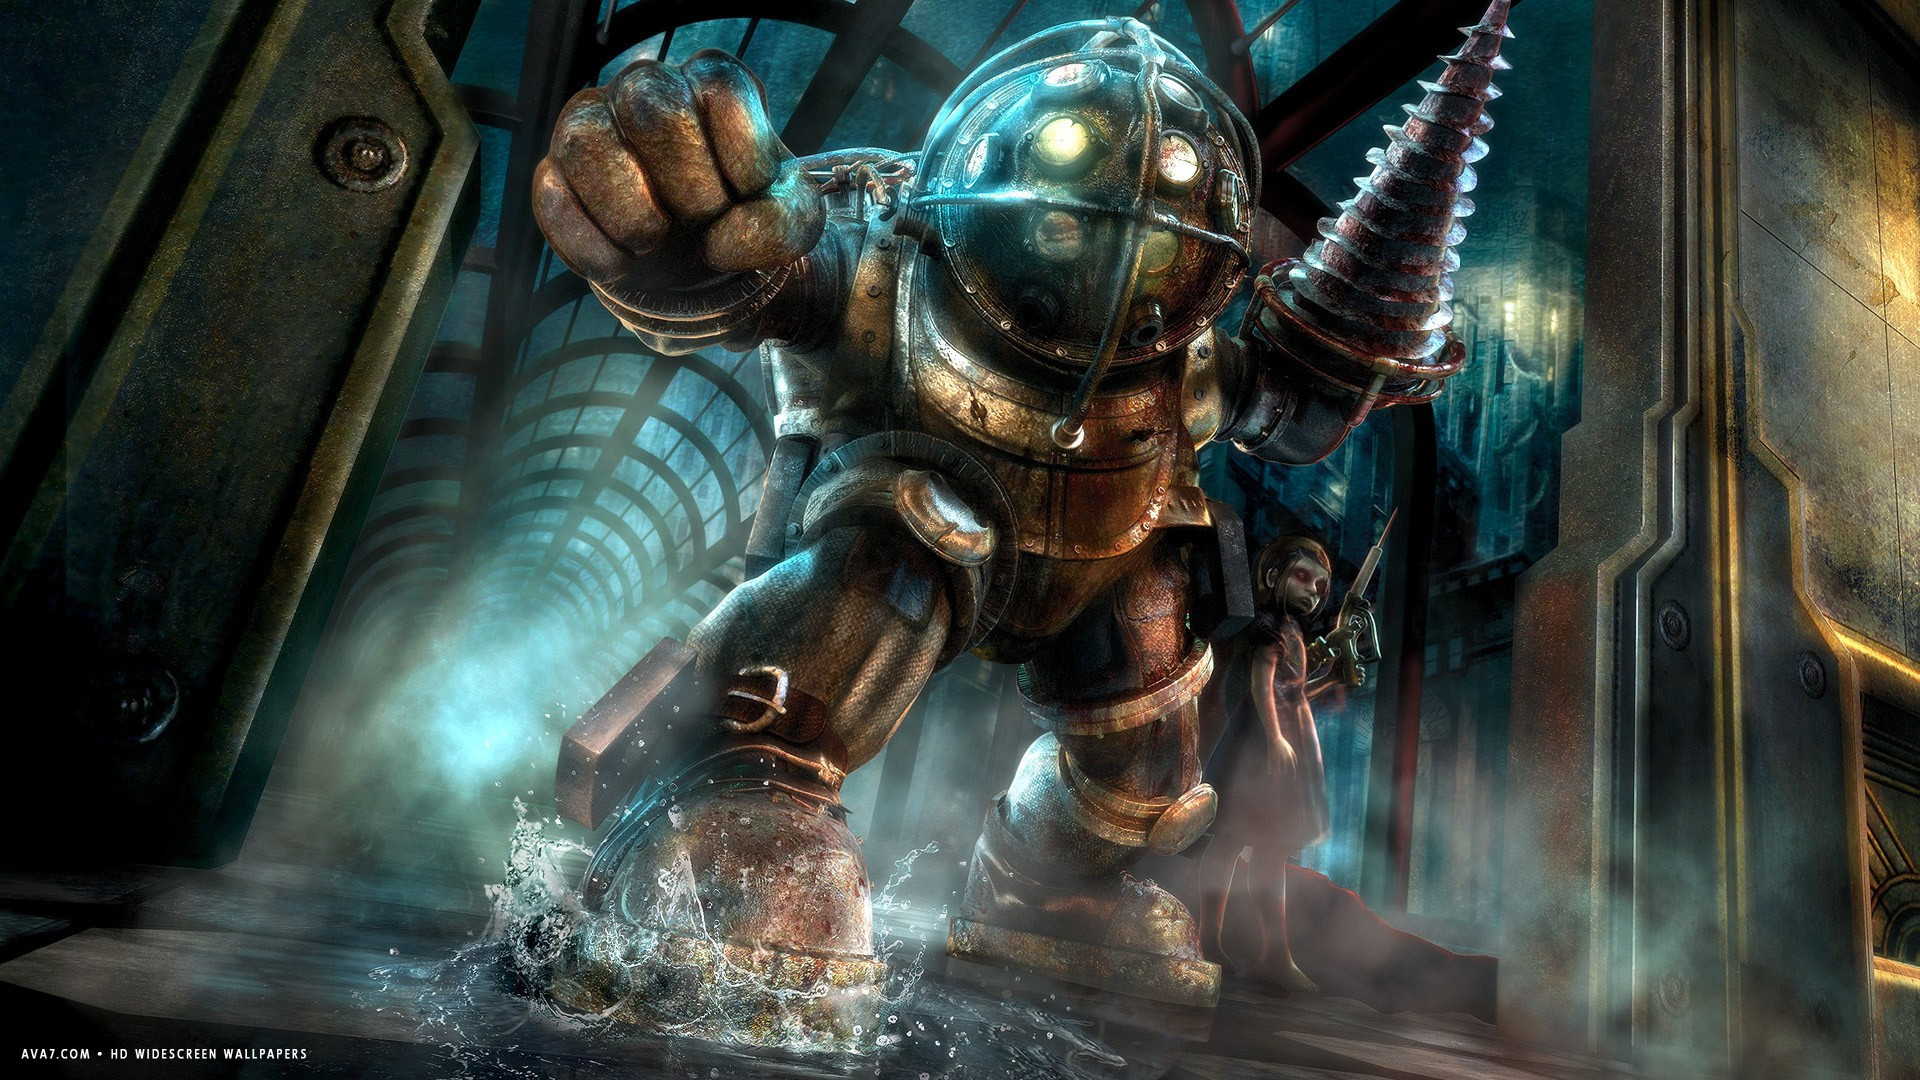 bioshock game big daddy hd widescreen wallpaper